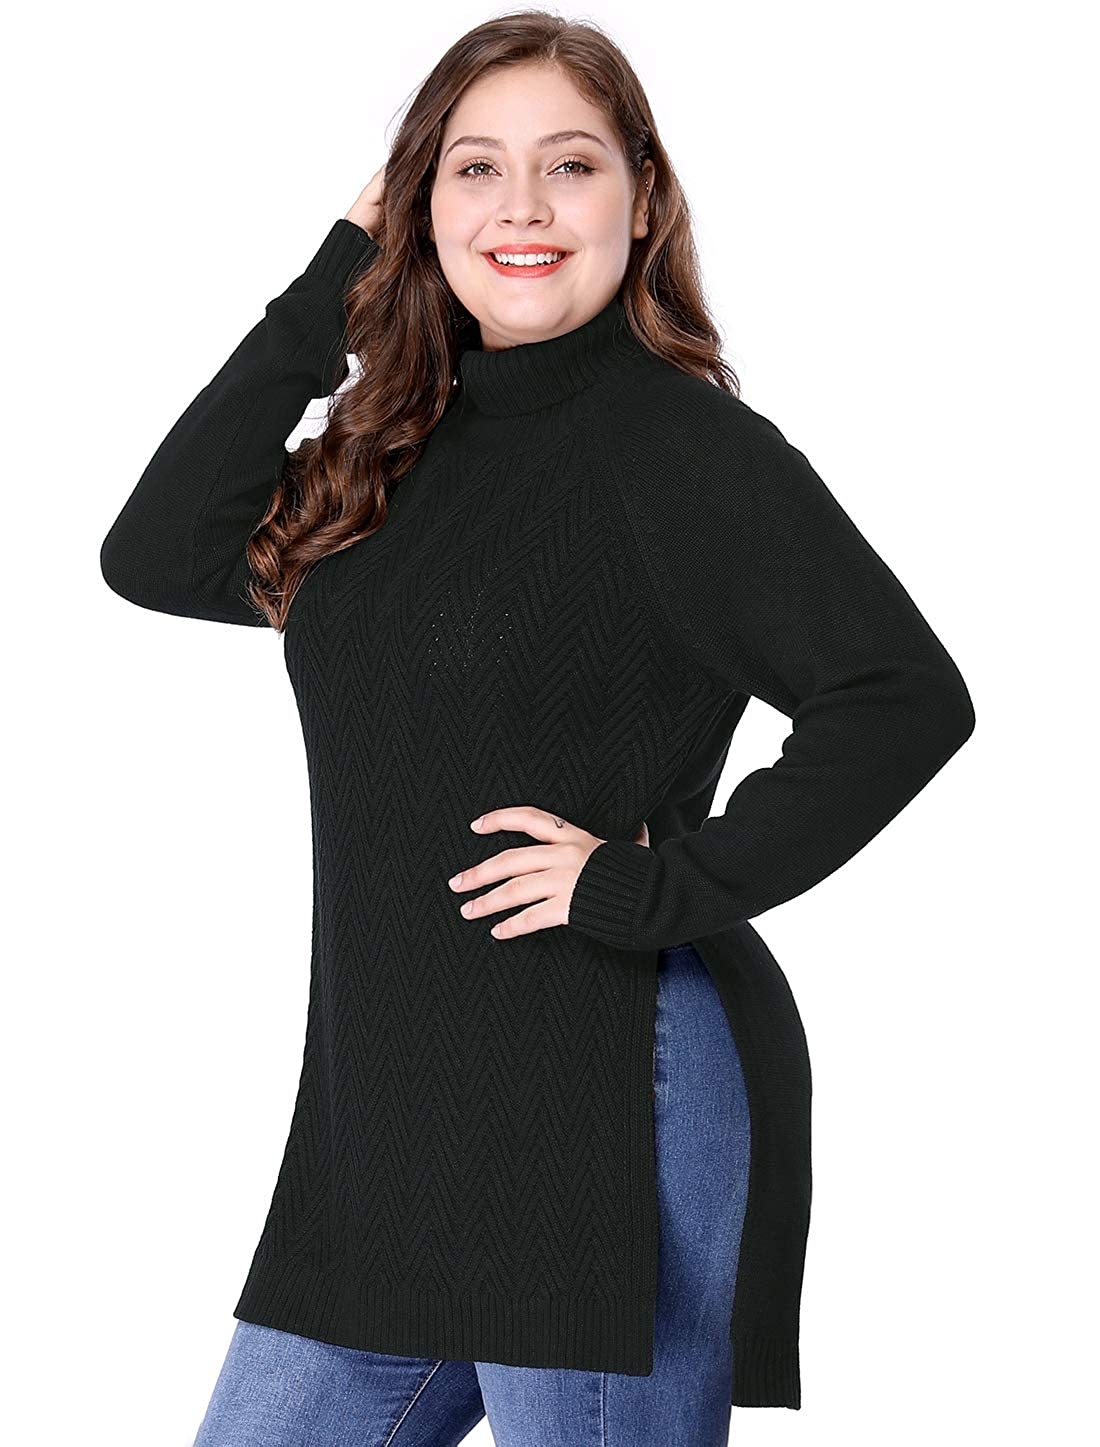 5d90183fff7 Agnes Orinda Women s Plus Size Side Slit Long Sleeve Mock Turtleneck  Sweater Tunic at Amazon Women s Clothing store